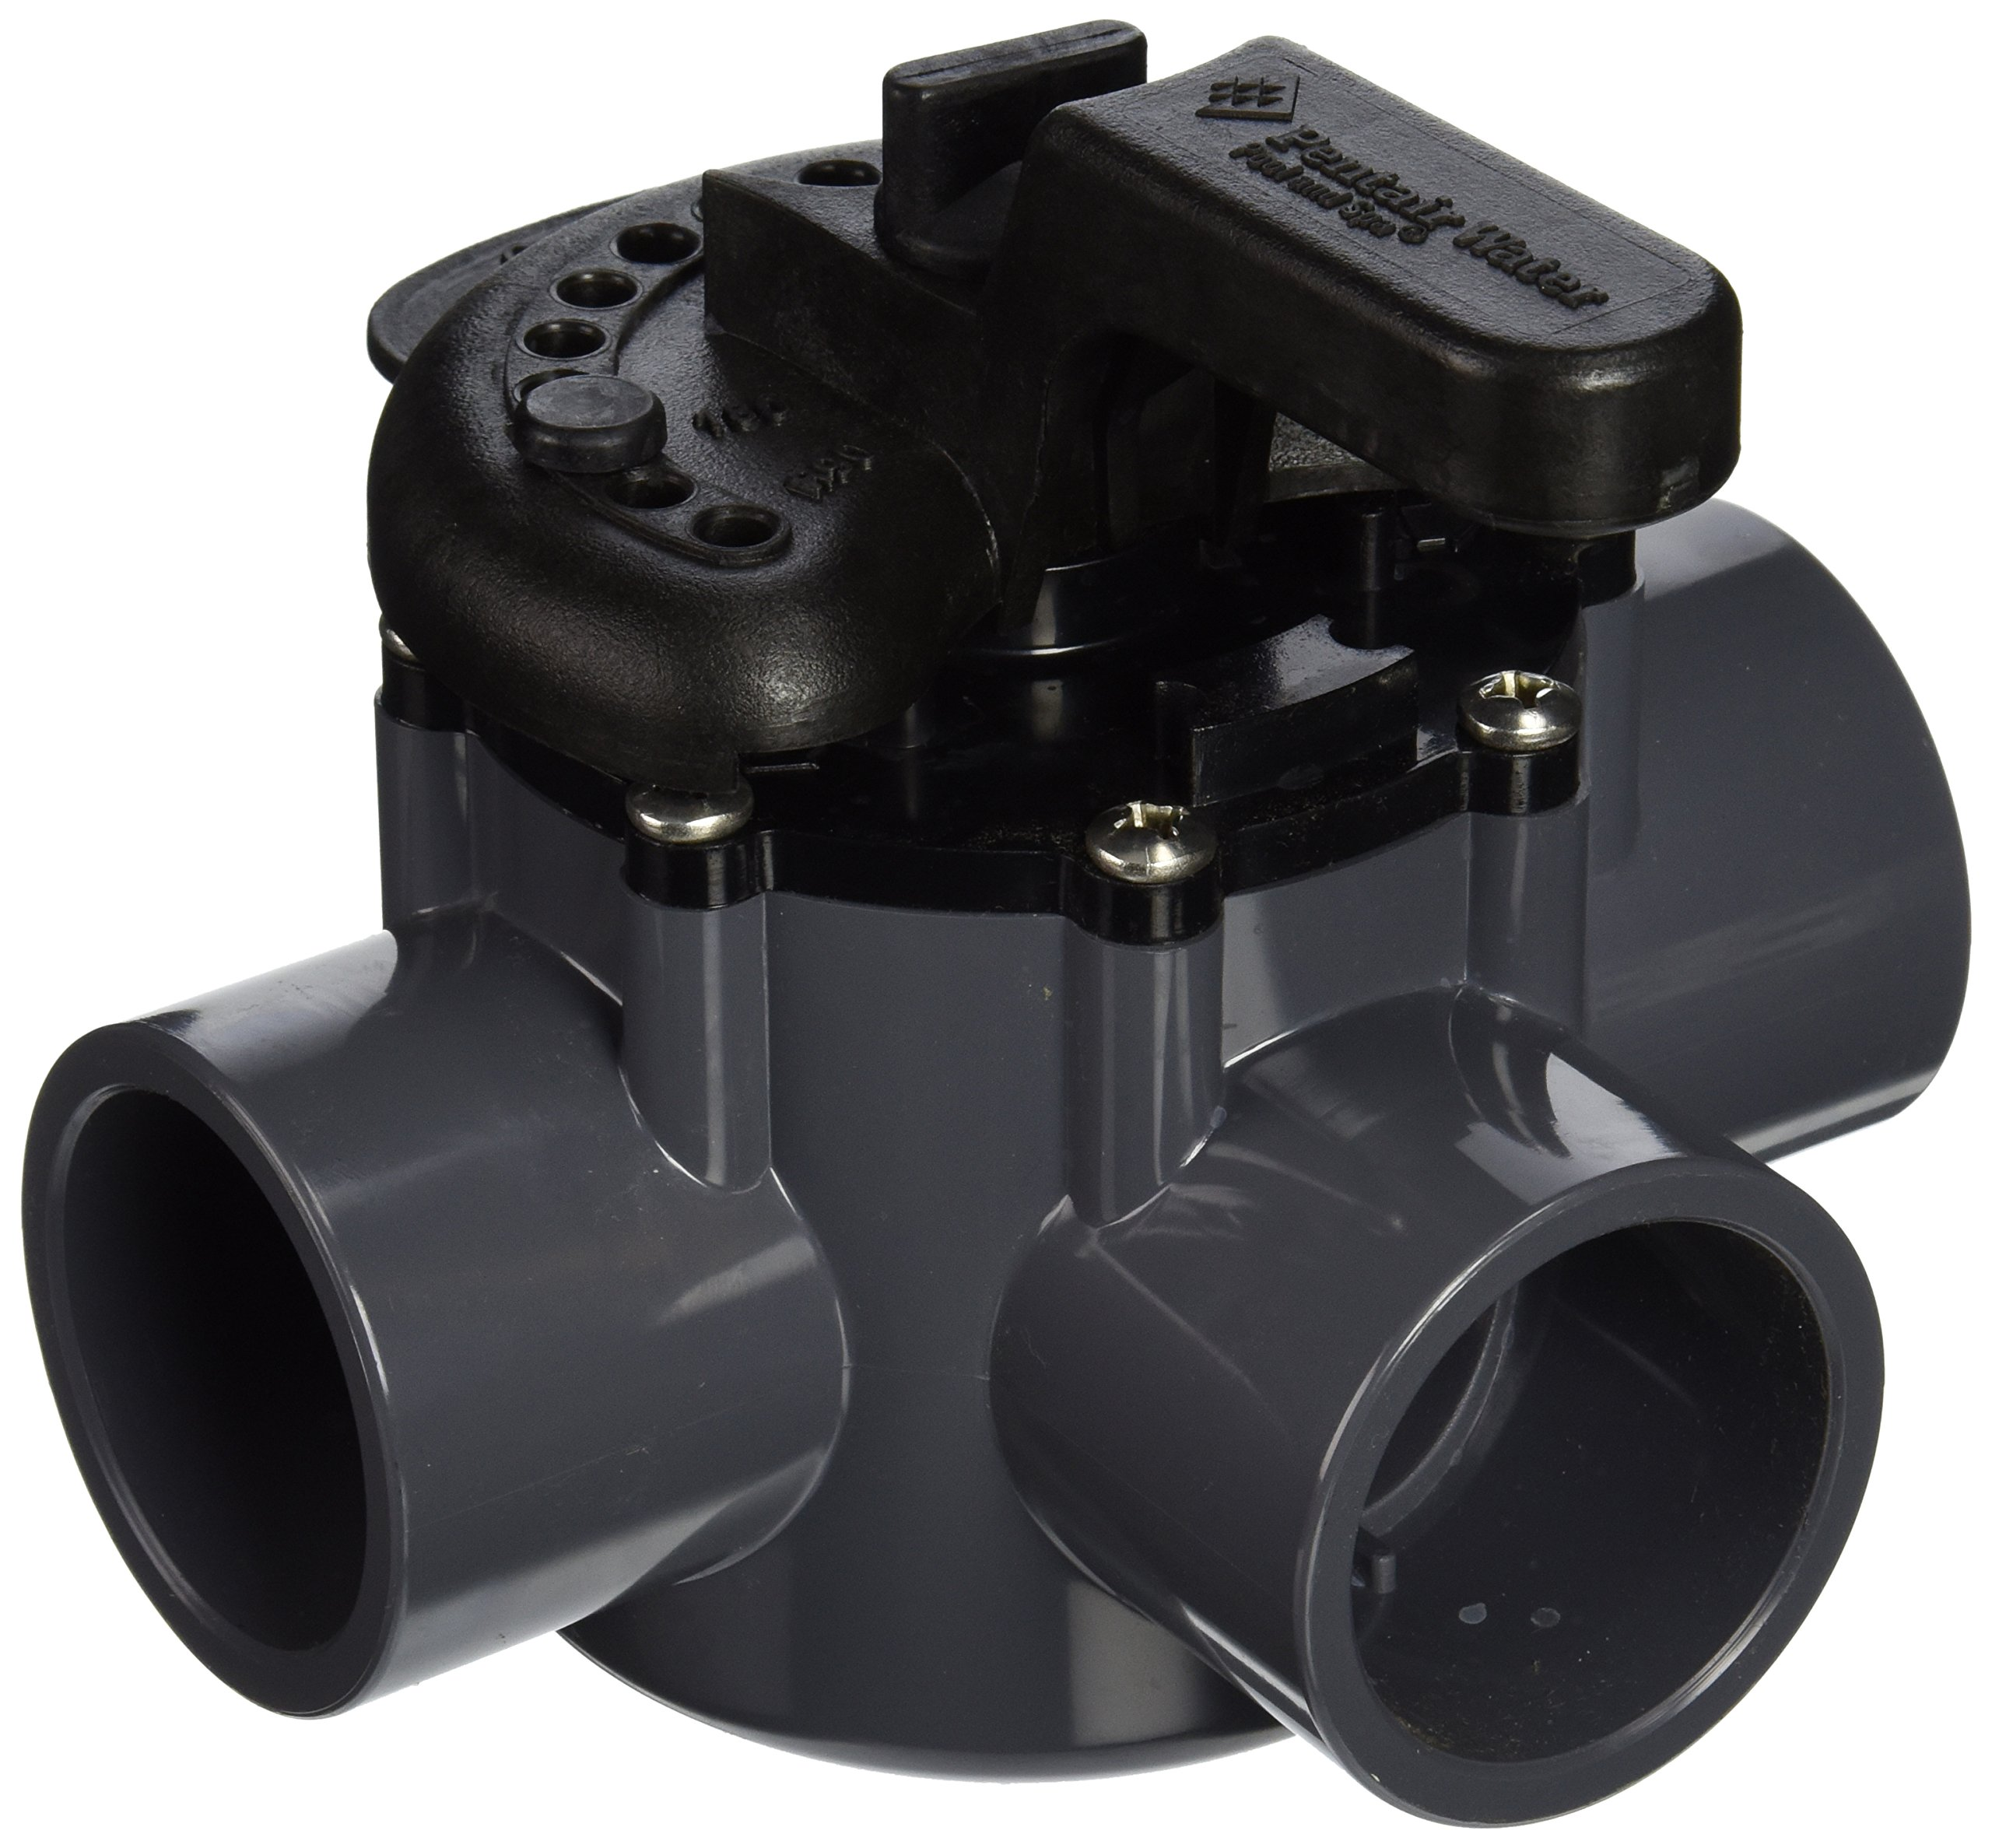 Pentair 263037 3-Way PVC 1-1/2 inch (2 inch slip outside) Pool And Spa Diverter Valve by Pentair